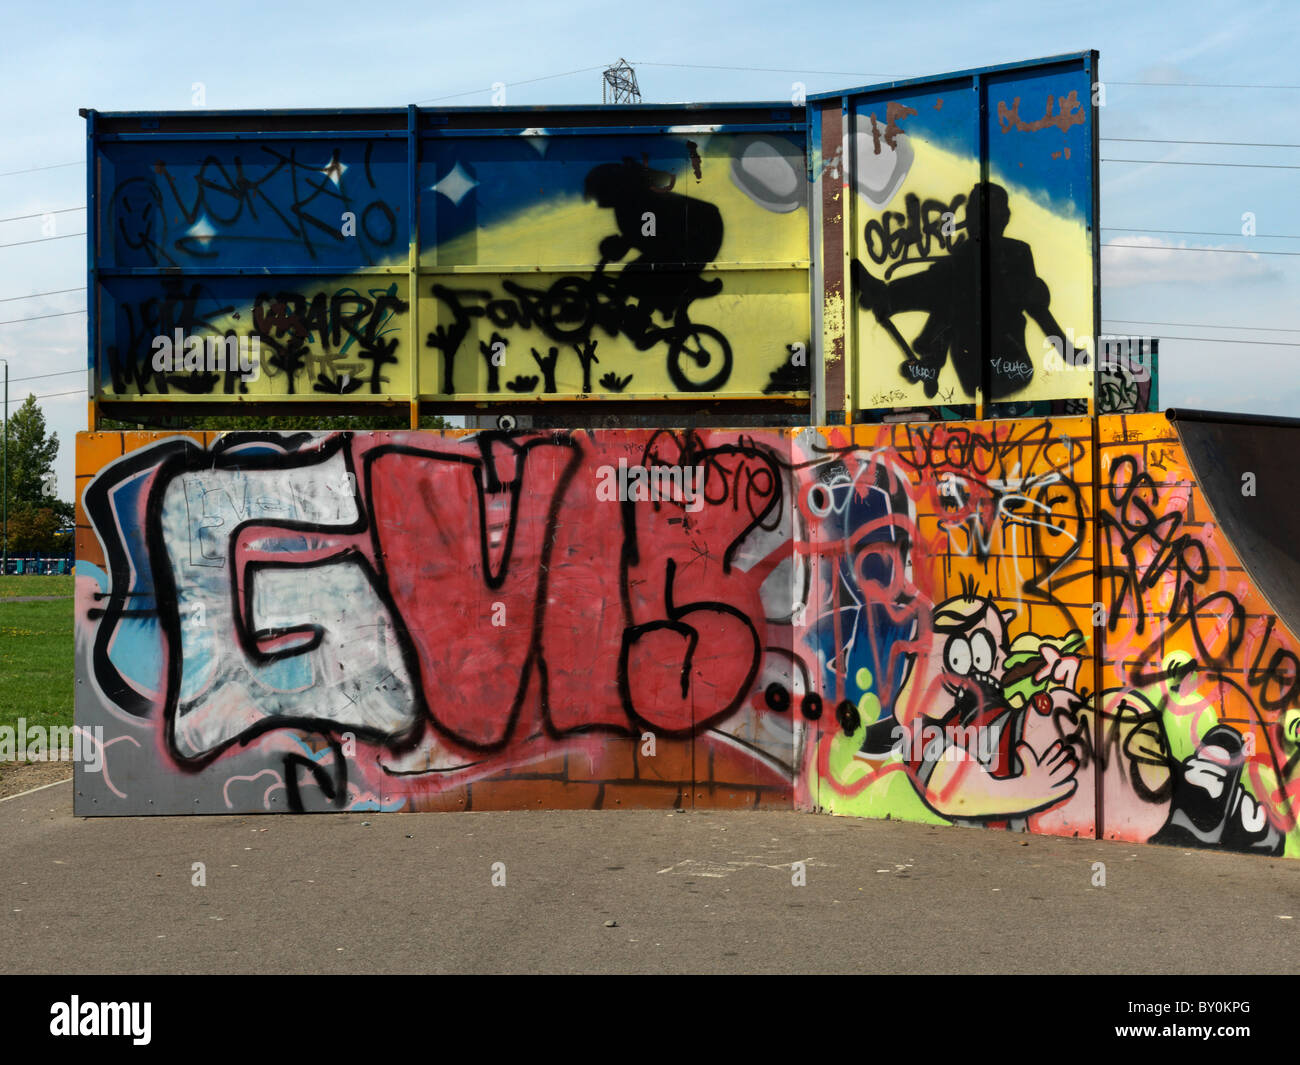 Rosehill Carshalton Surrey England Skateboard Park Graffiti On Skateboard Ramp - Stock Image